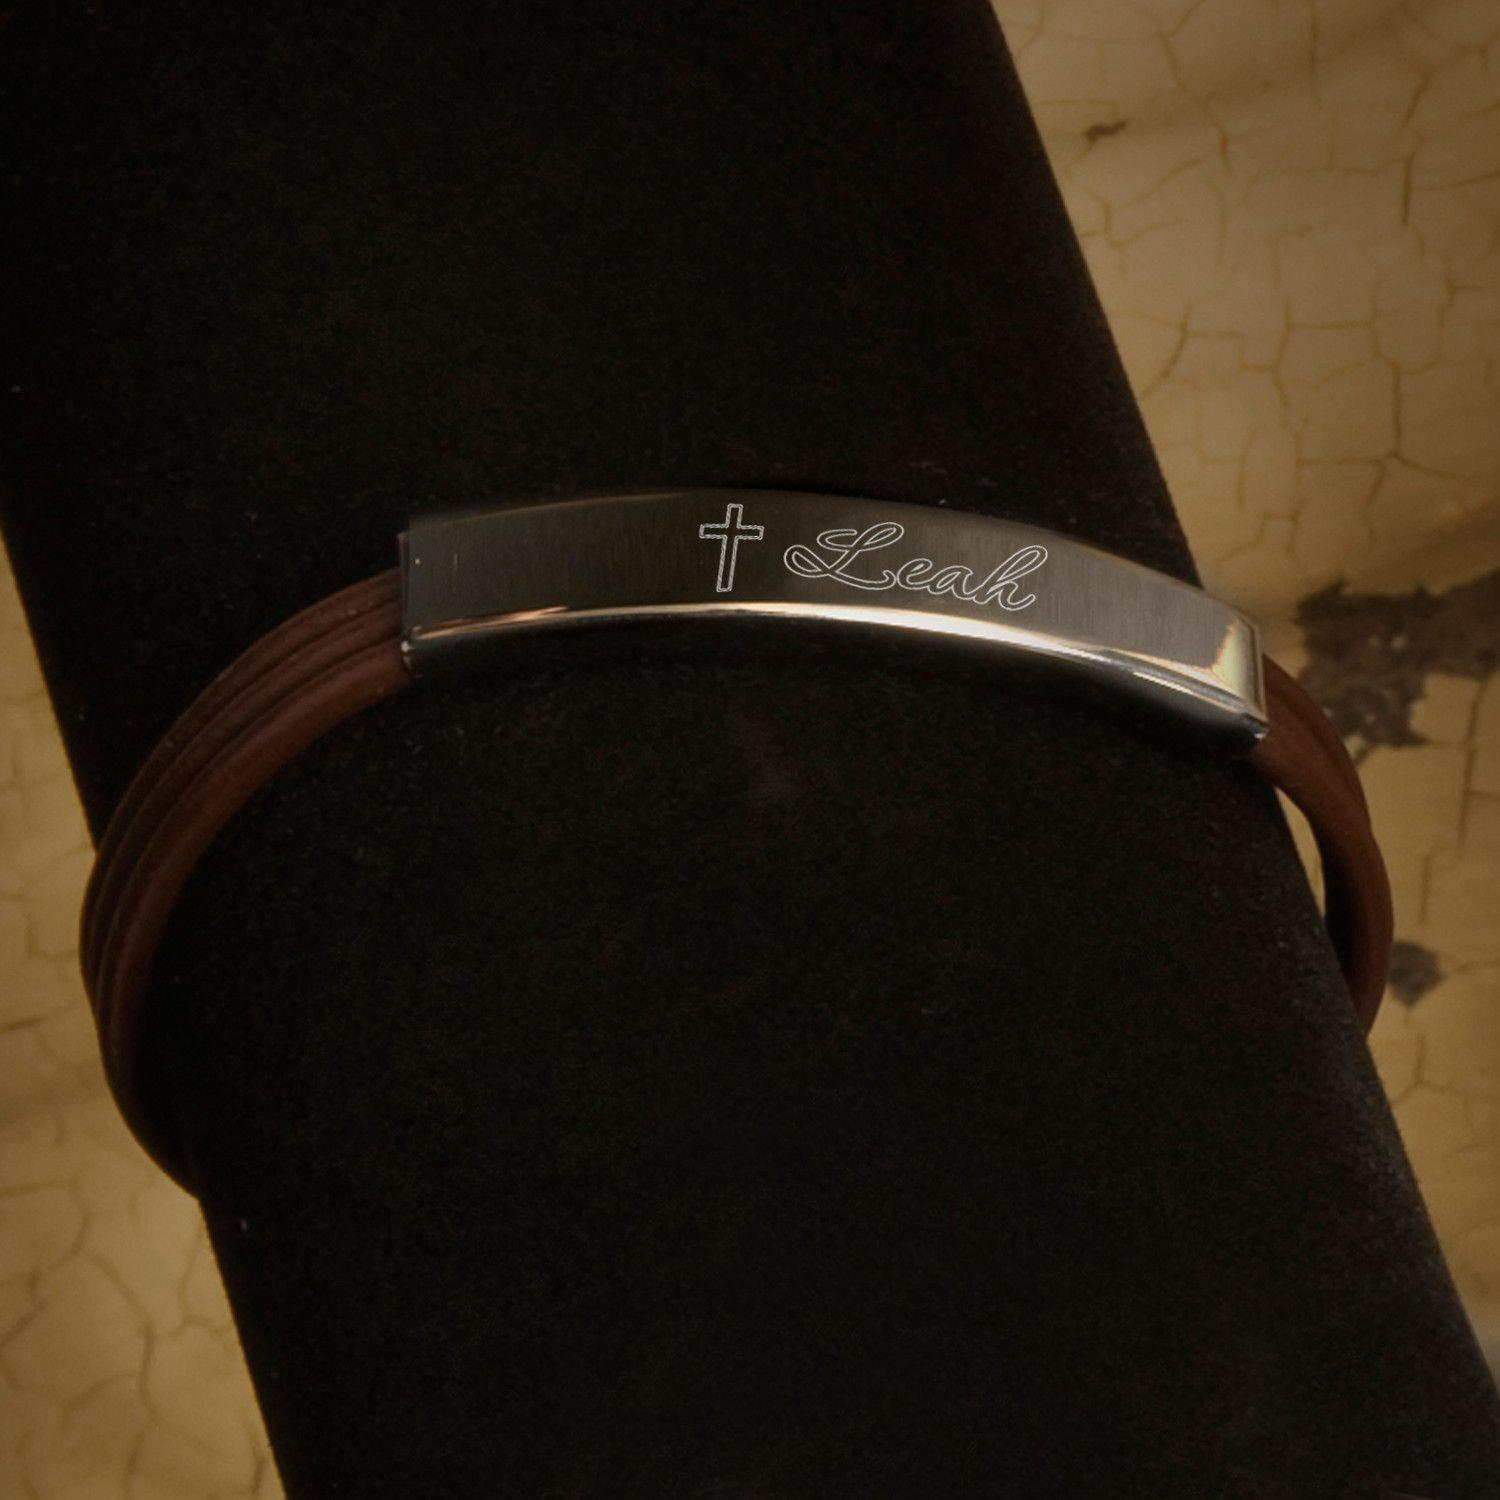 Inspirational-Leather-Bracelets-with-Engraved-Cross